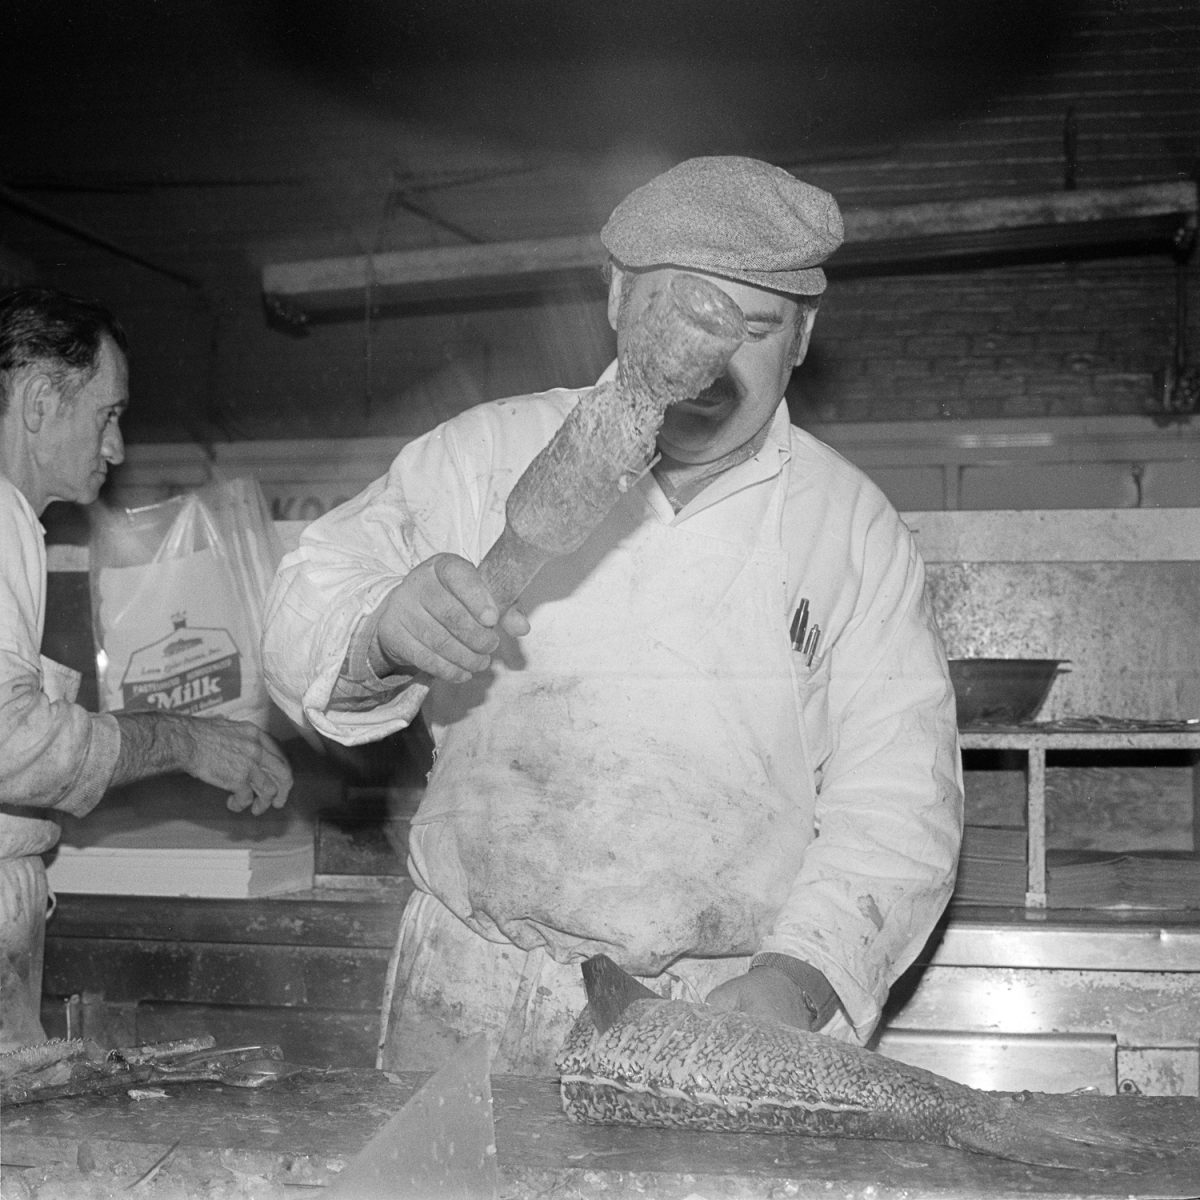 Slicing fish at Essex Street Market - New York, NY October 1978